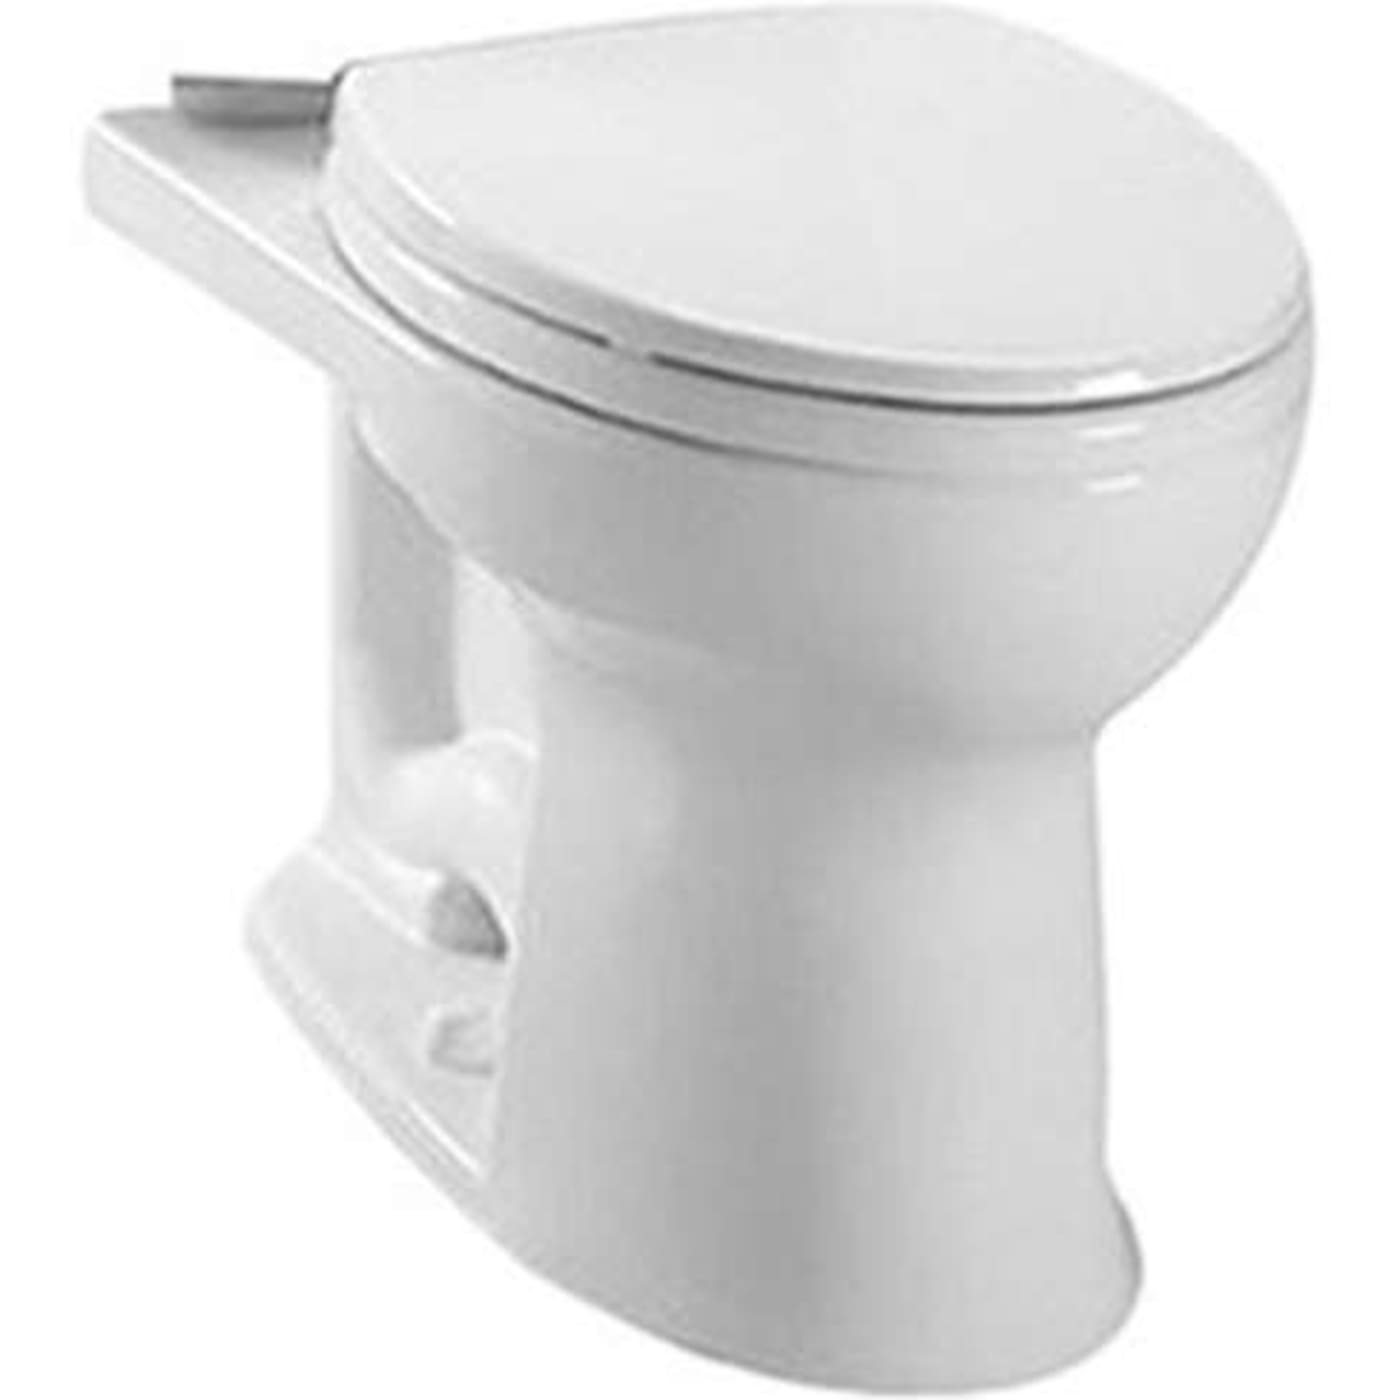 Toto Drake II Toilet Bowl C454CUFGT20#01 Cotton White - Goedekers.com